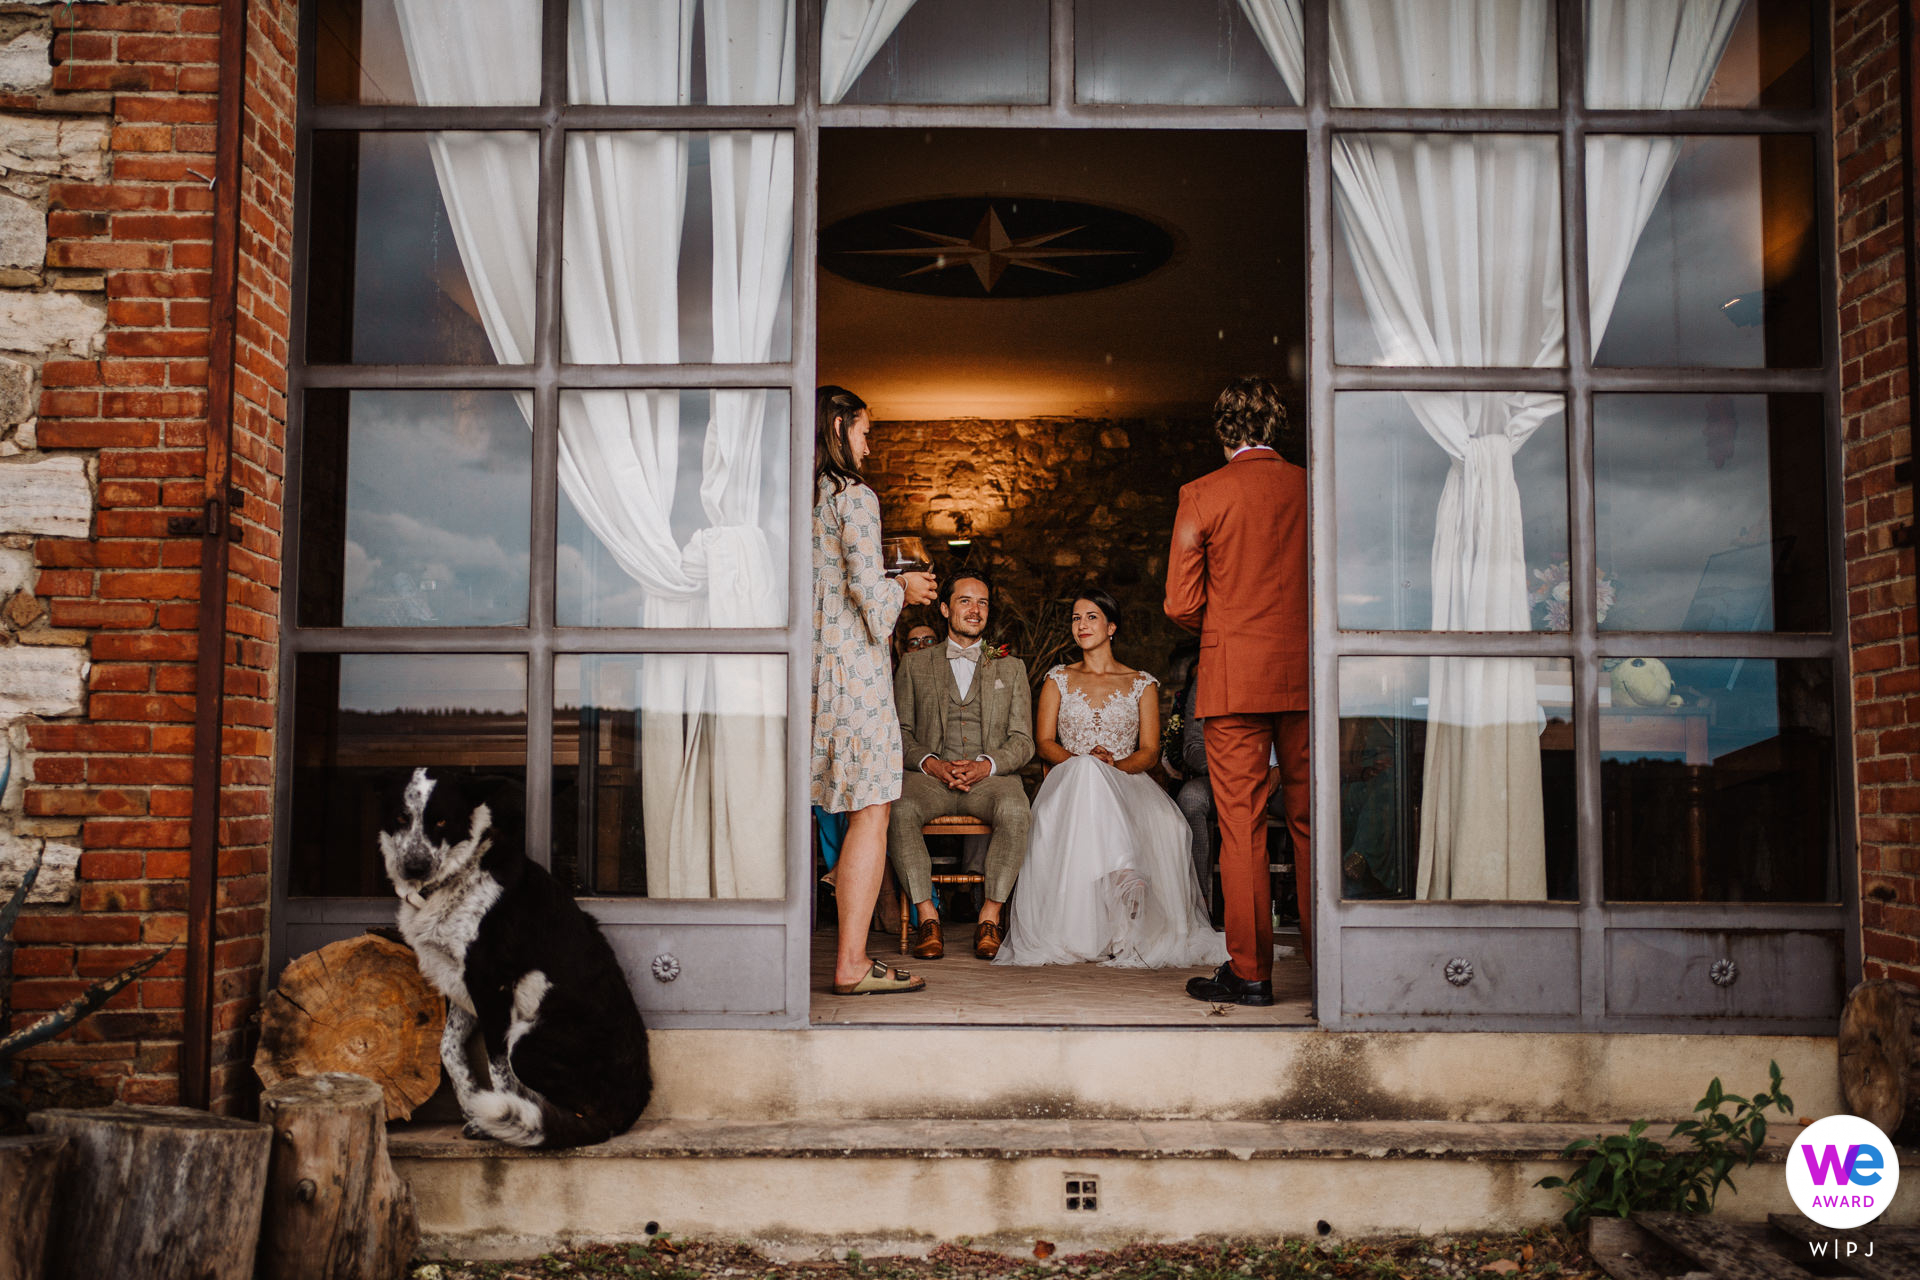 Agriturismo Il Rigo Elopement Venue Images - Italy   outside of the room where the second part of the ceremony took place